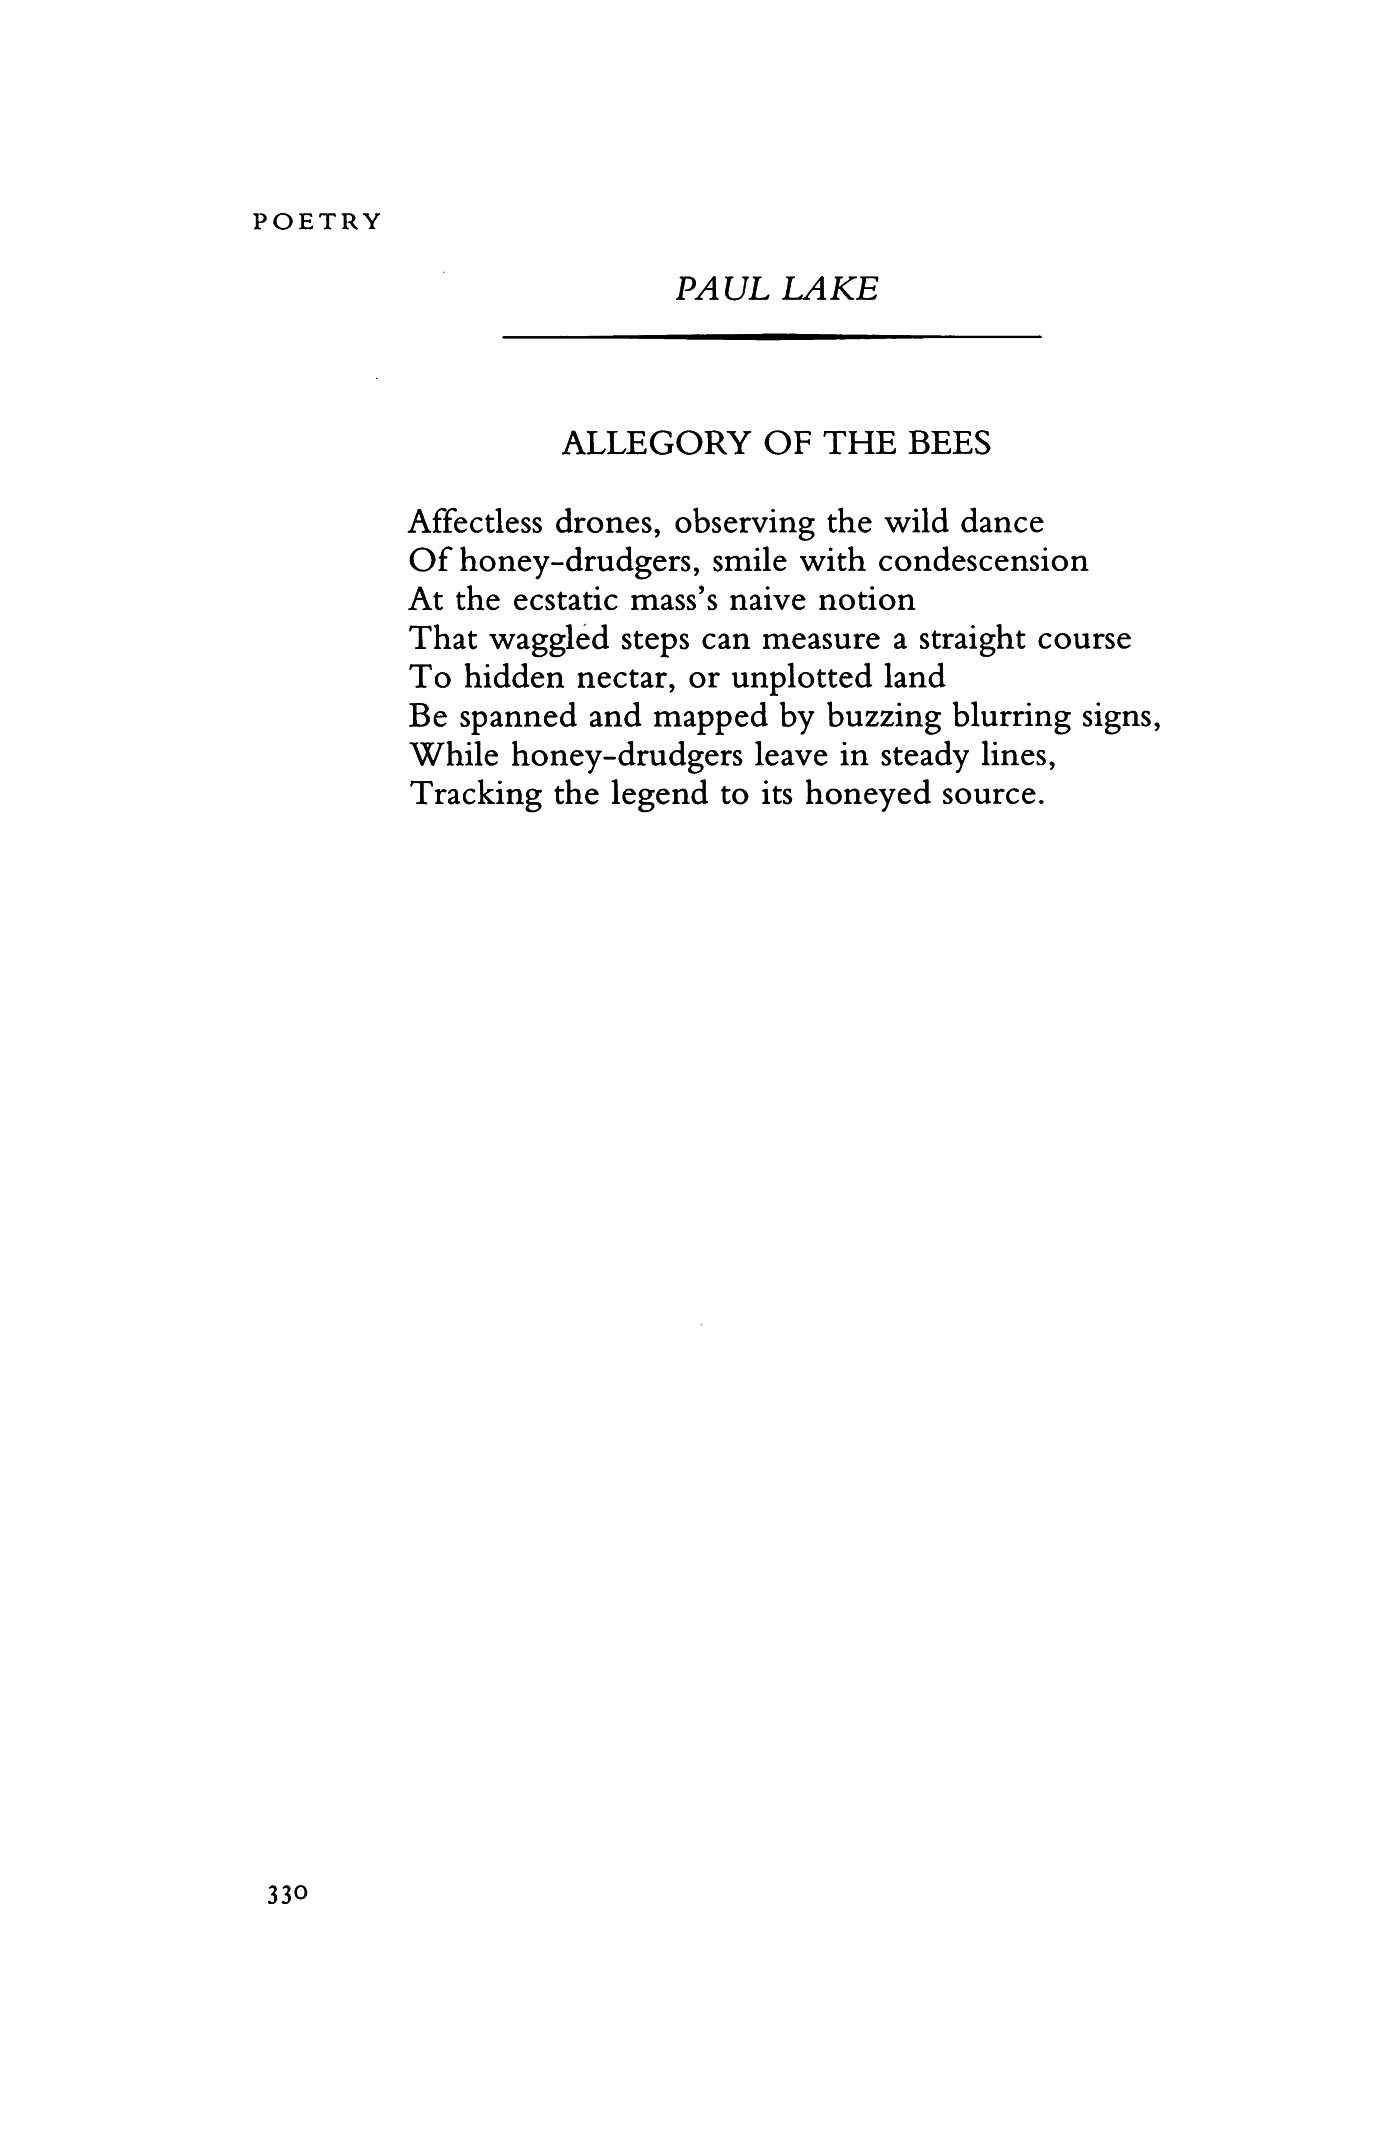 Allegory of the Bees by Paul Lake   Poetry Magazine